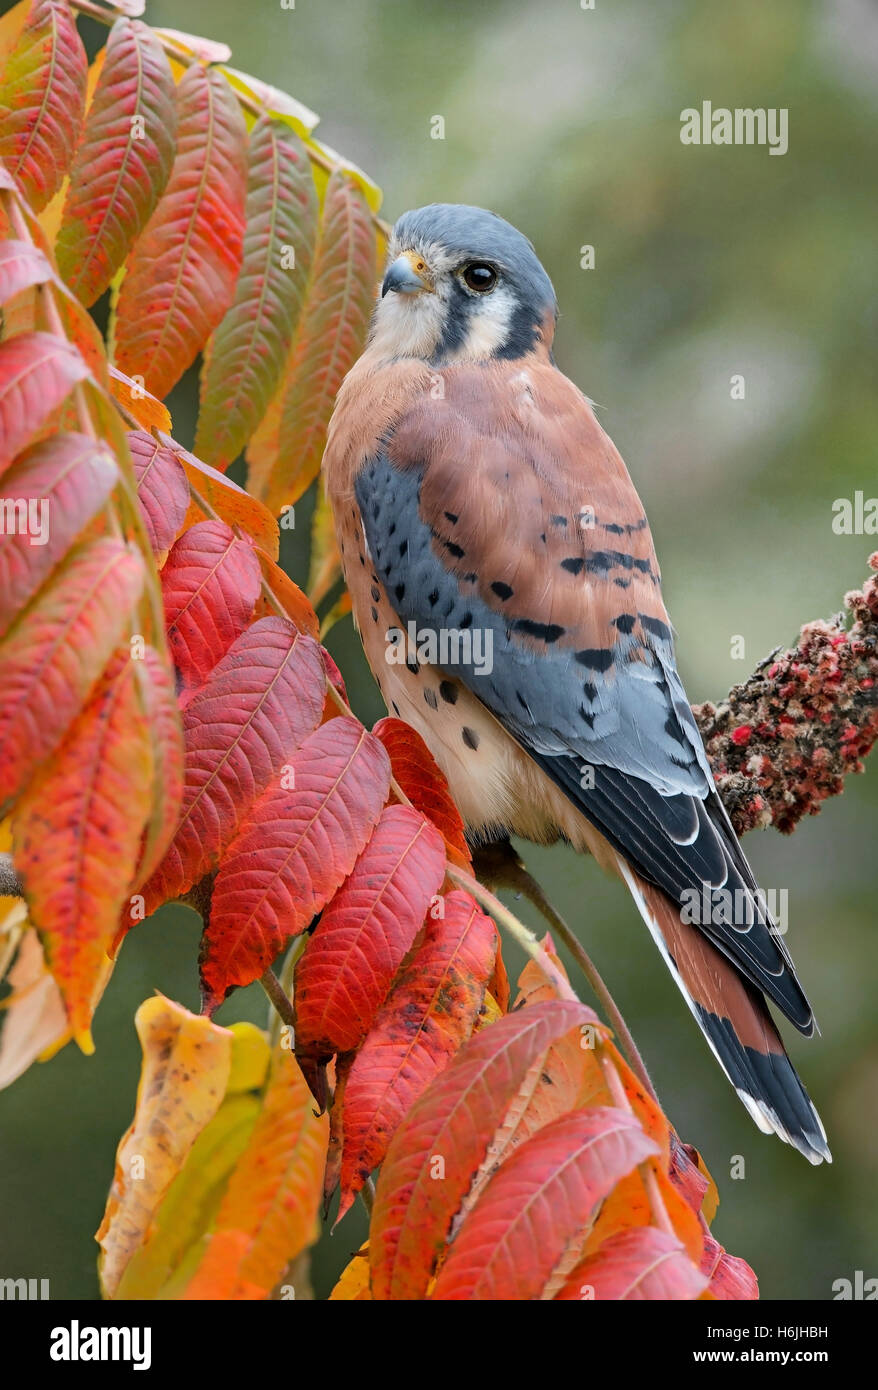 American Kestrel or Sparrow Hawk Falco sparverius, male, perched on Staghorn Sumac branch (Rhus typhina) Autumn, - Stock Image